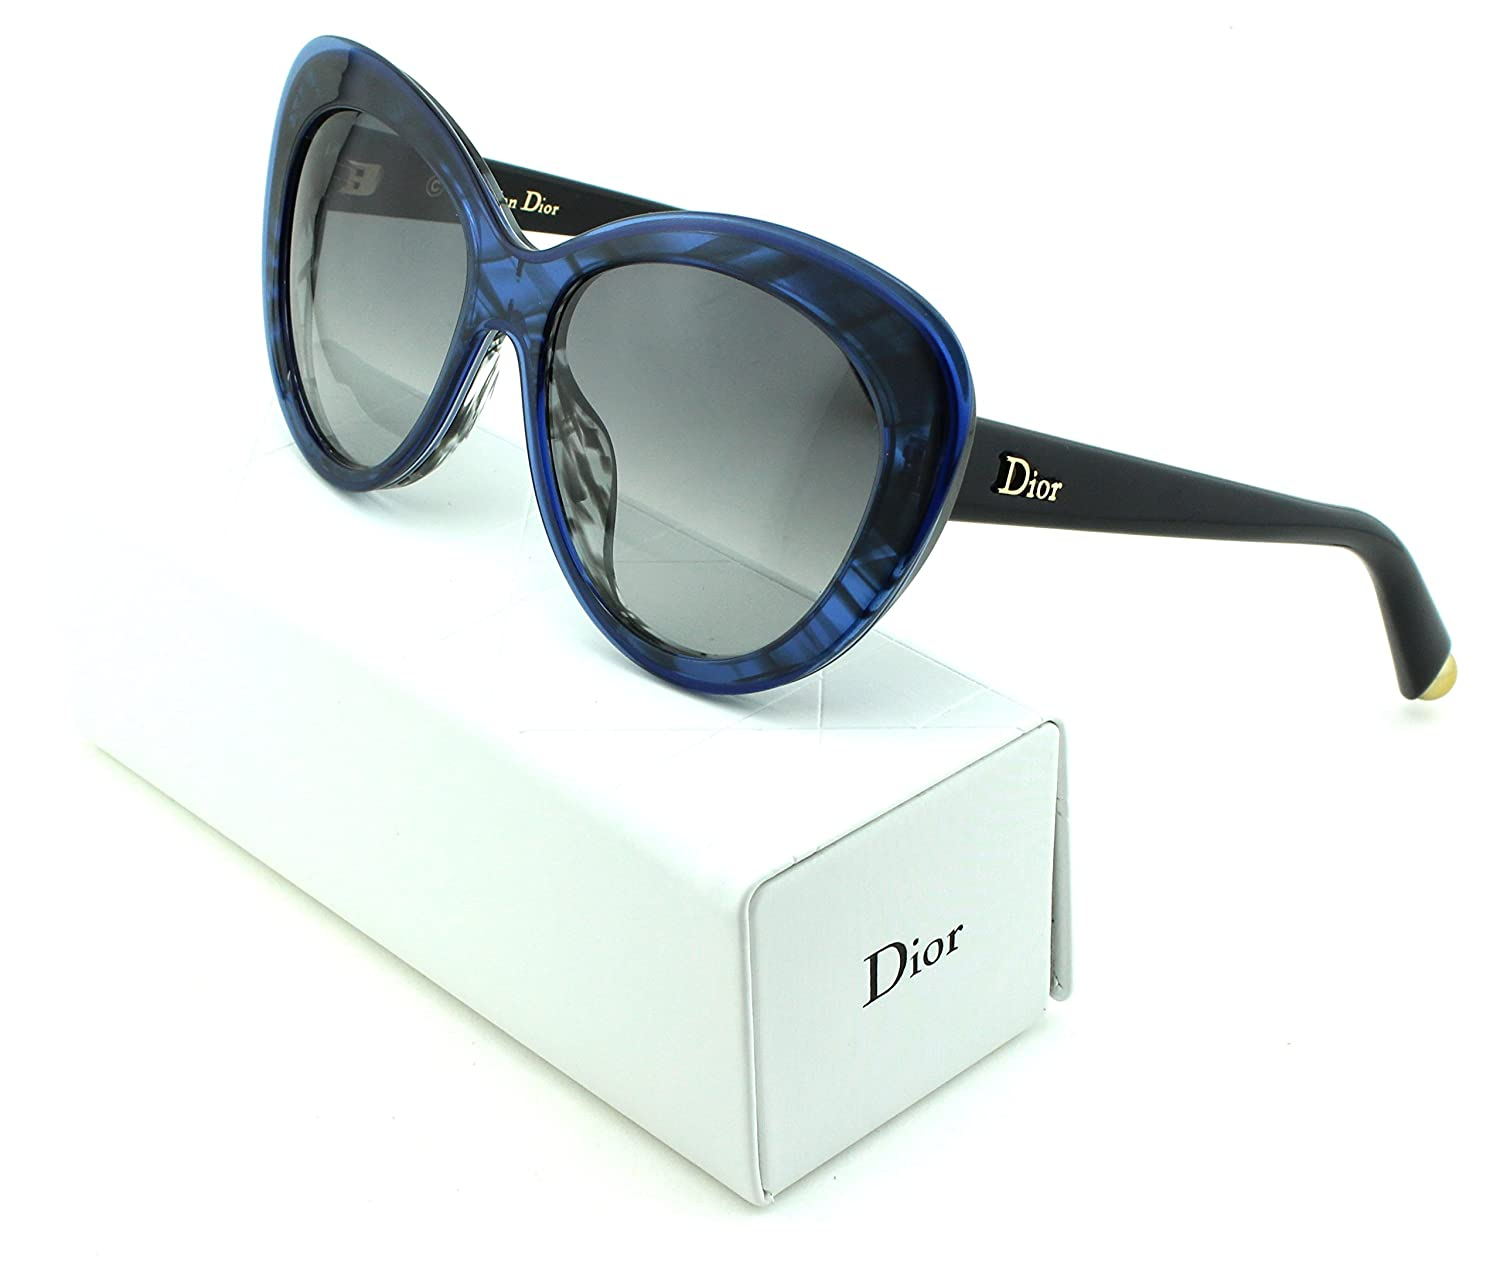 Dior レディース B075DGFVXF Pale White Brown Frame|ブラウン グラデーション レンズ (03HK) Pale White Brown Frame